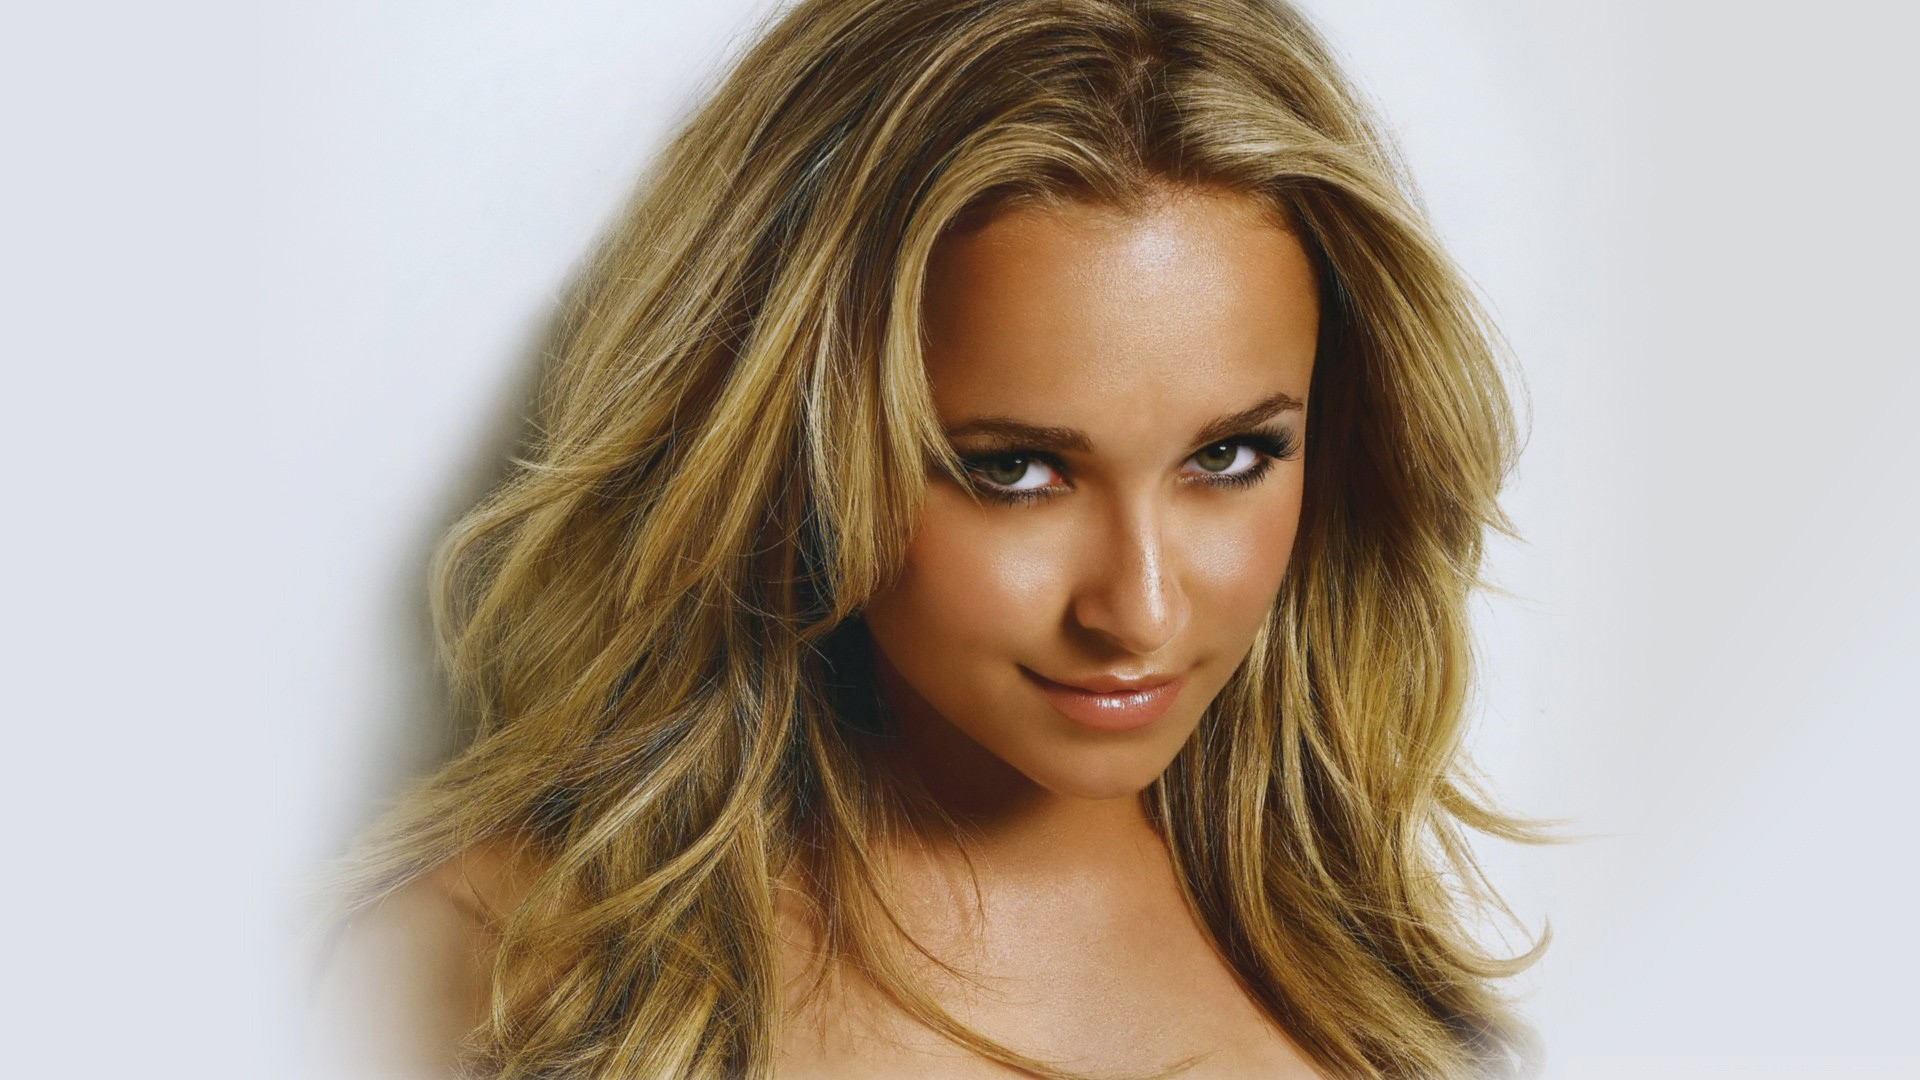 Beautiful Hayden Panettiere Wallpaper